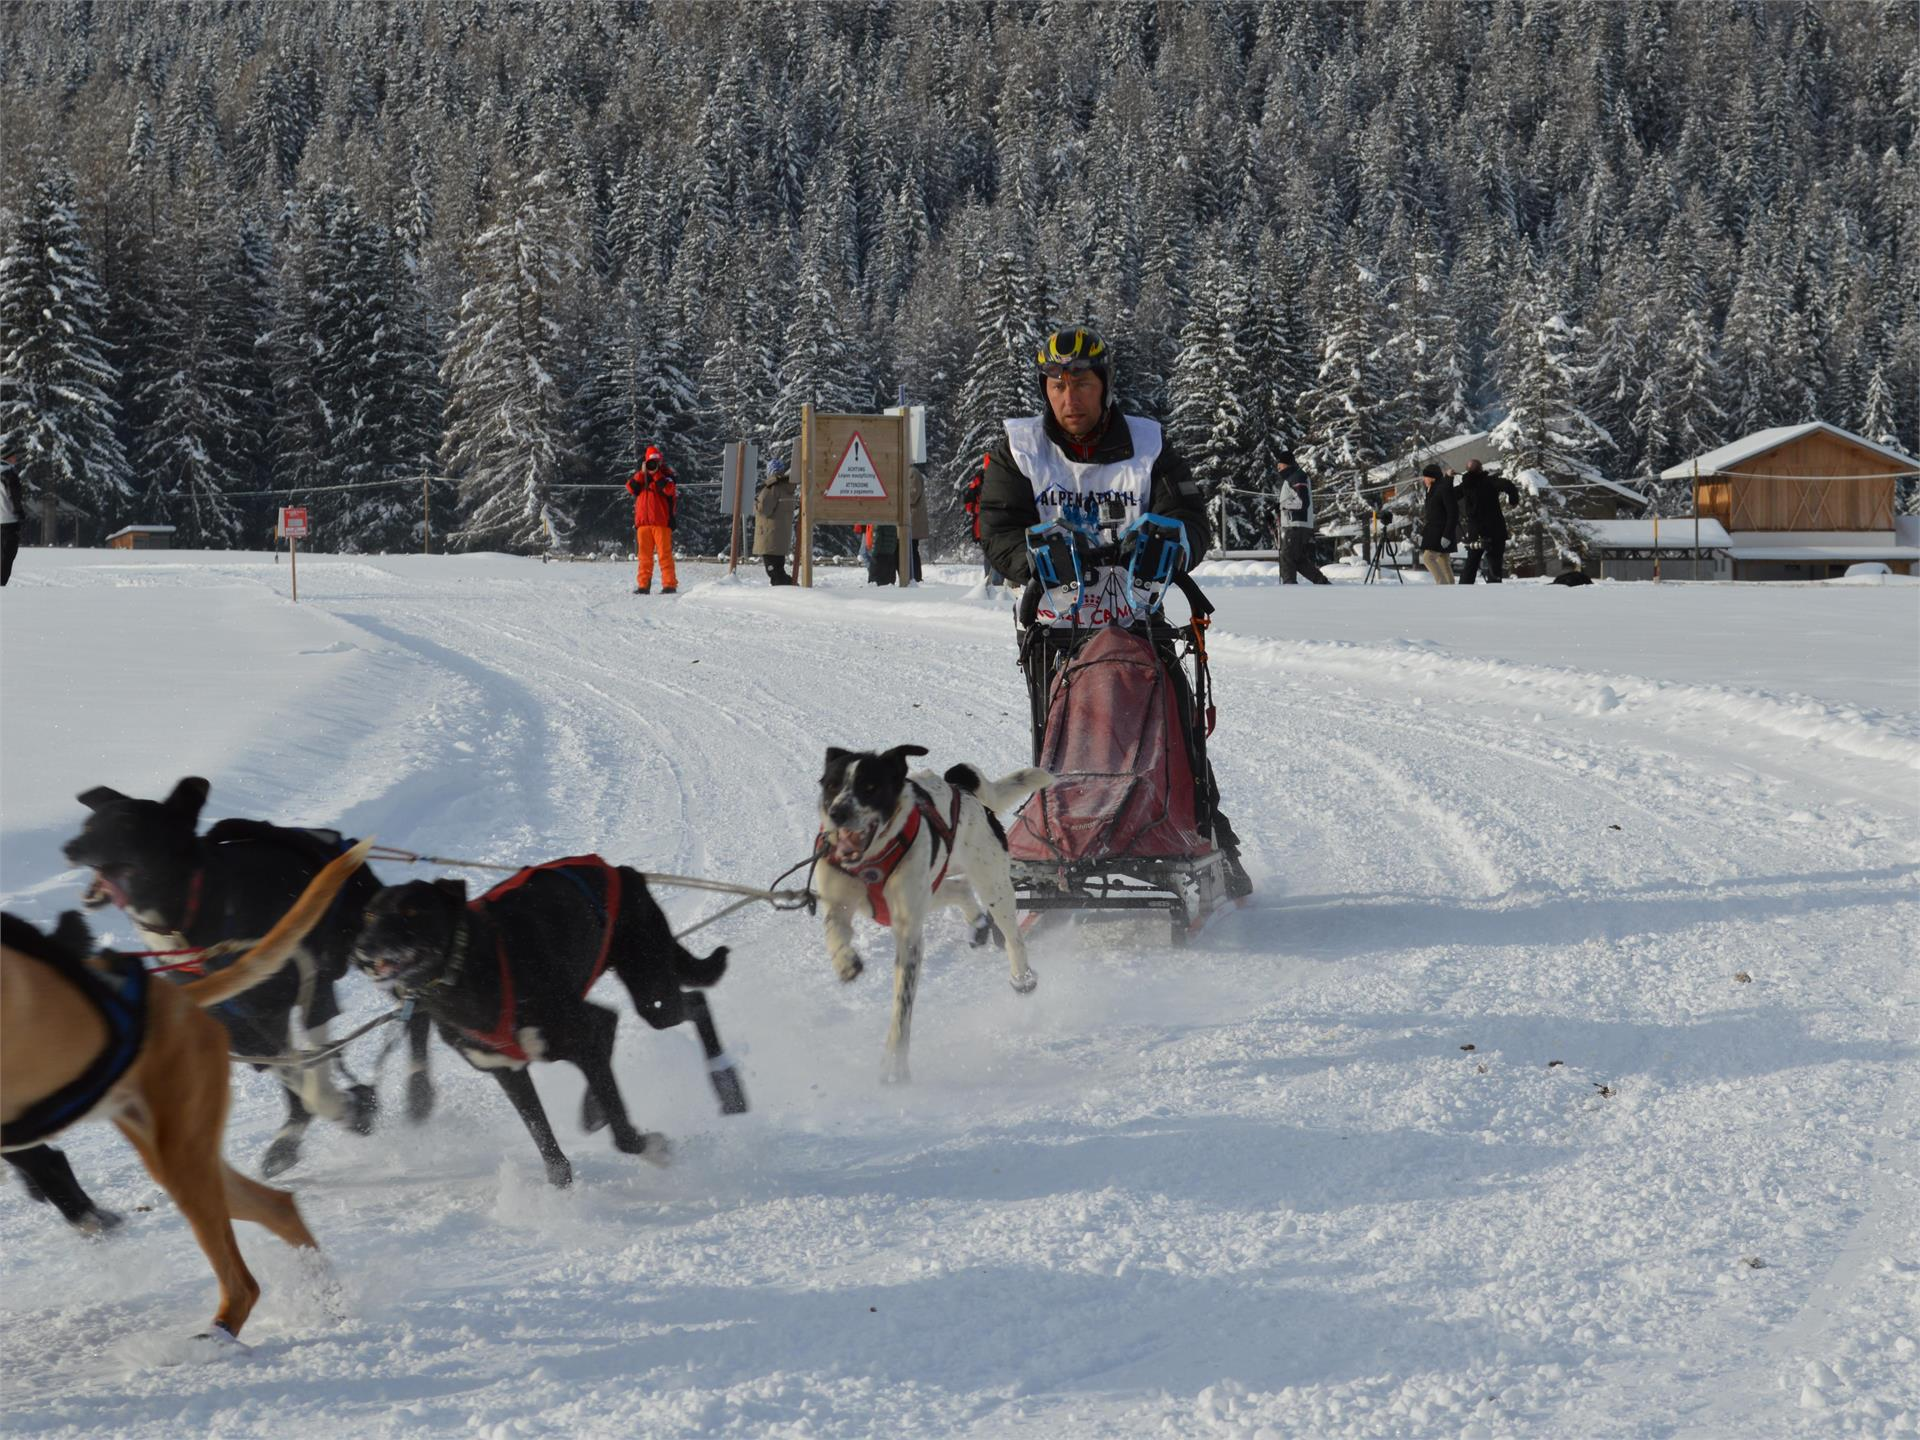 Alpentrail - international sledge dog race